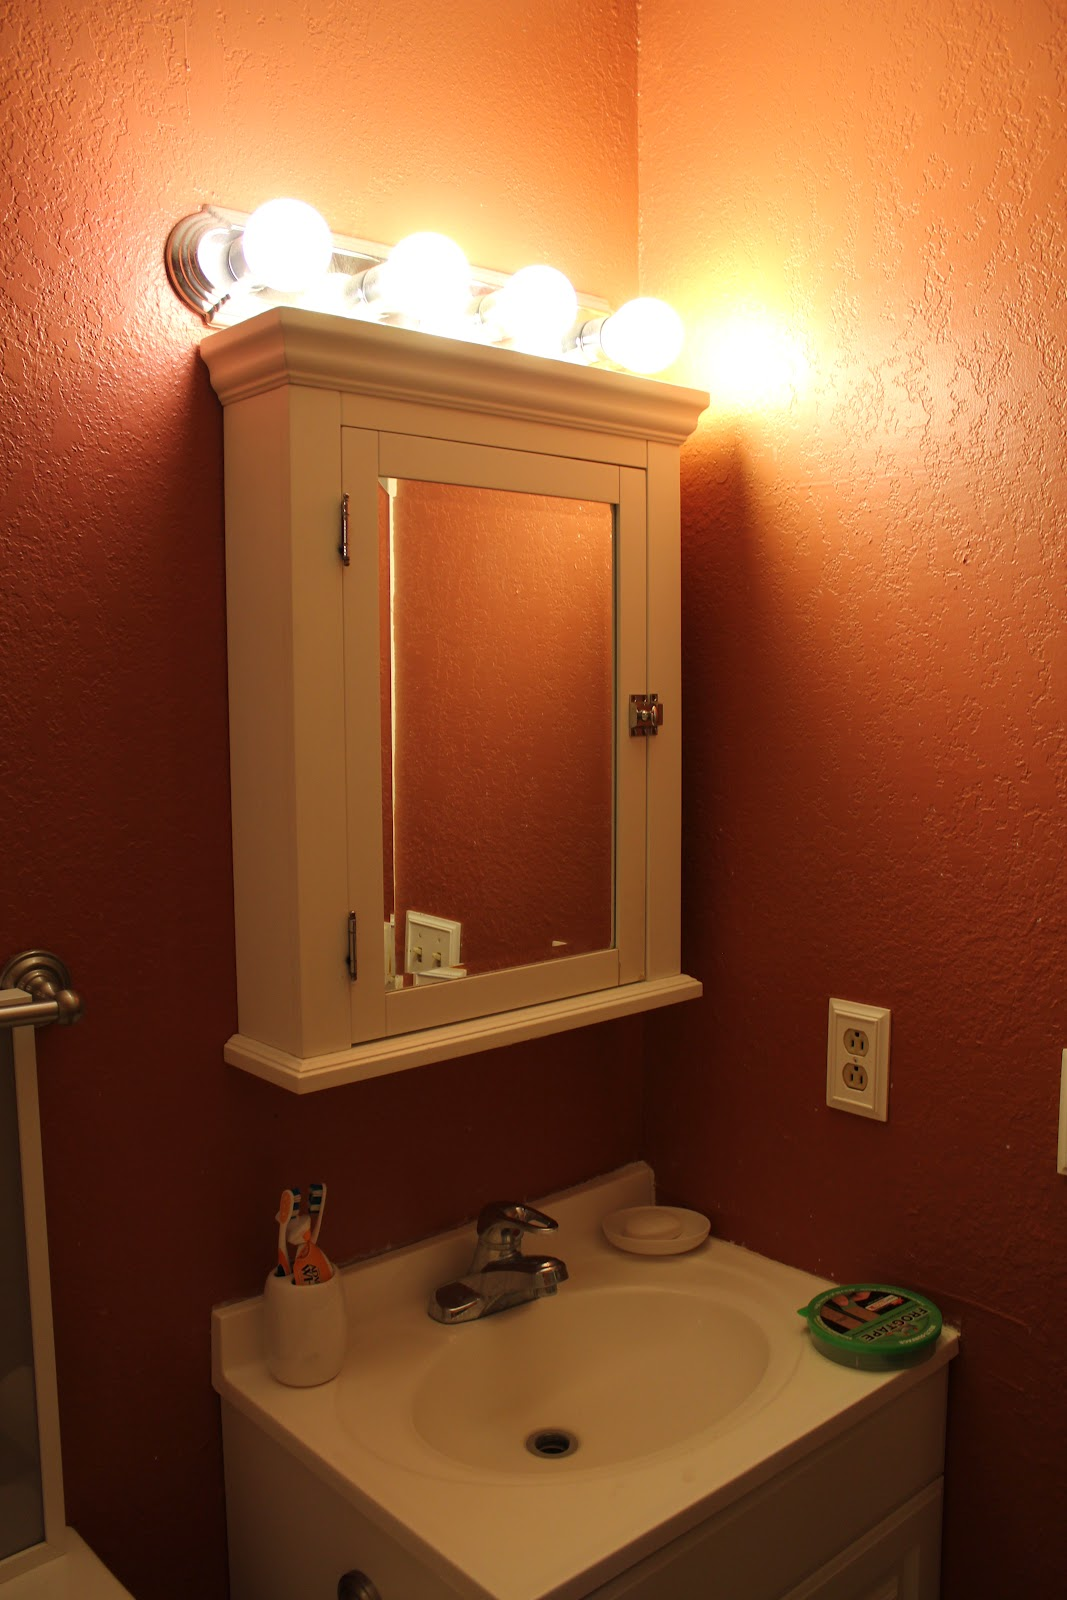 Bath Lighting Over Medicine Cabinet